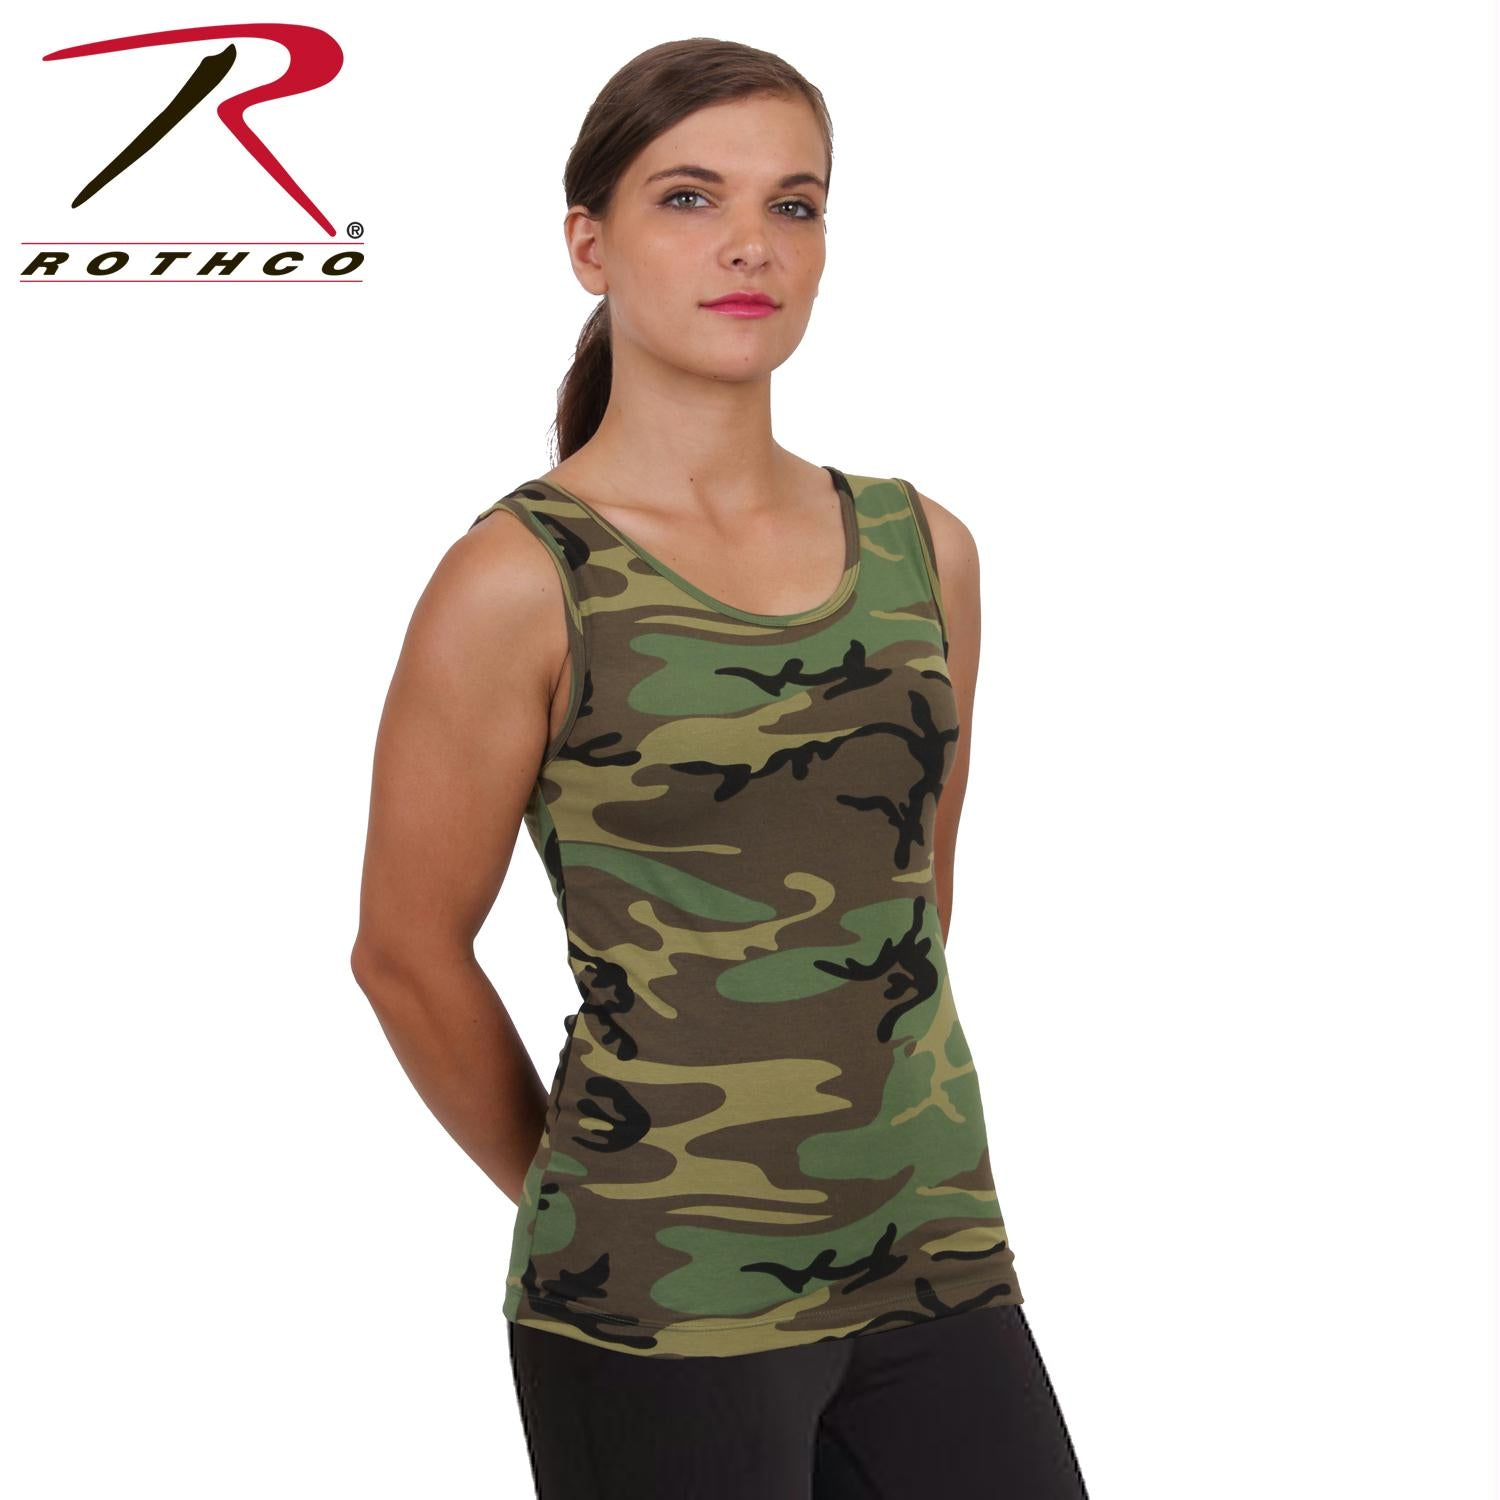 Rothco Womens Camo Stretch Tank Top - Woodland Camo / M